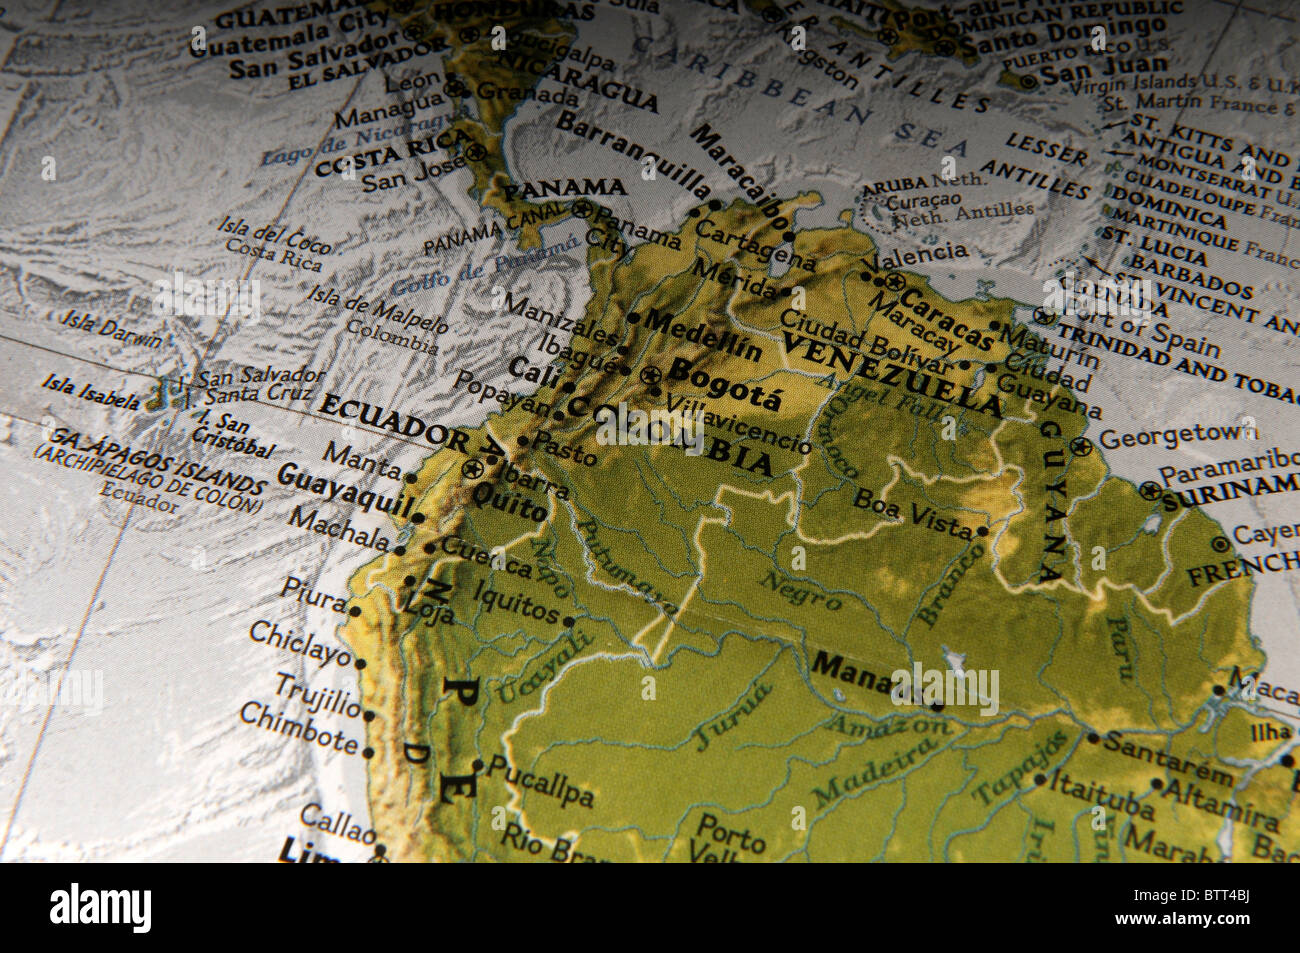 South America Map Stock Photos   South America Map Stock Images   Alamy Map of Venezuela and Colombia South America   Stock Image